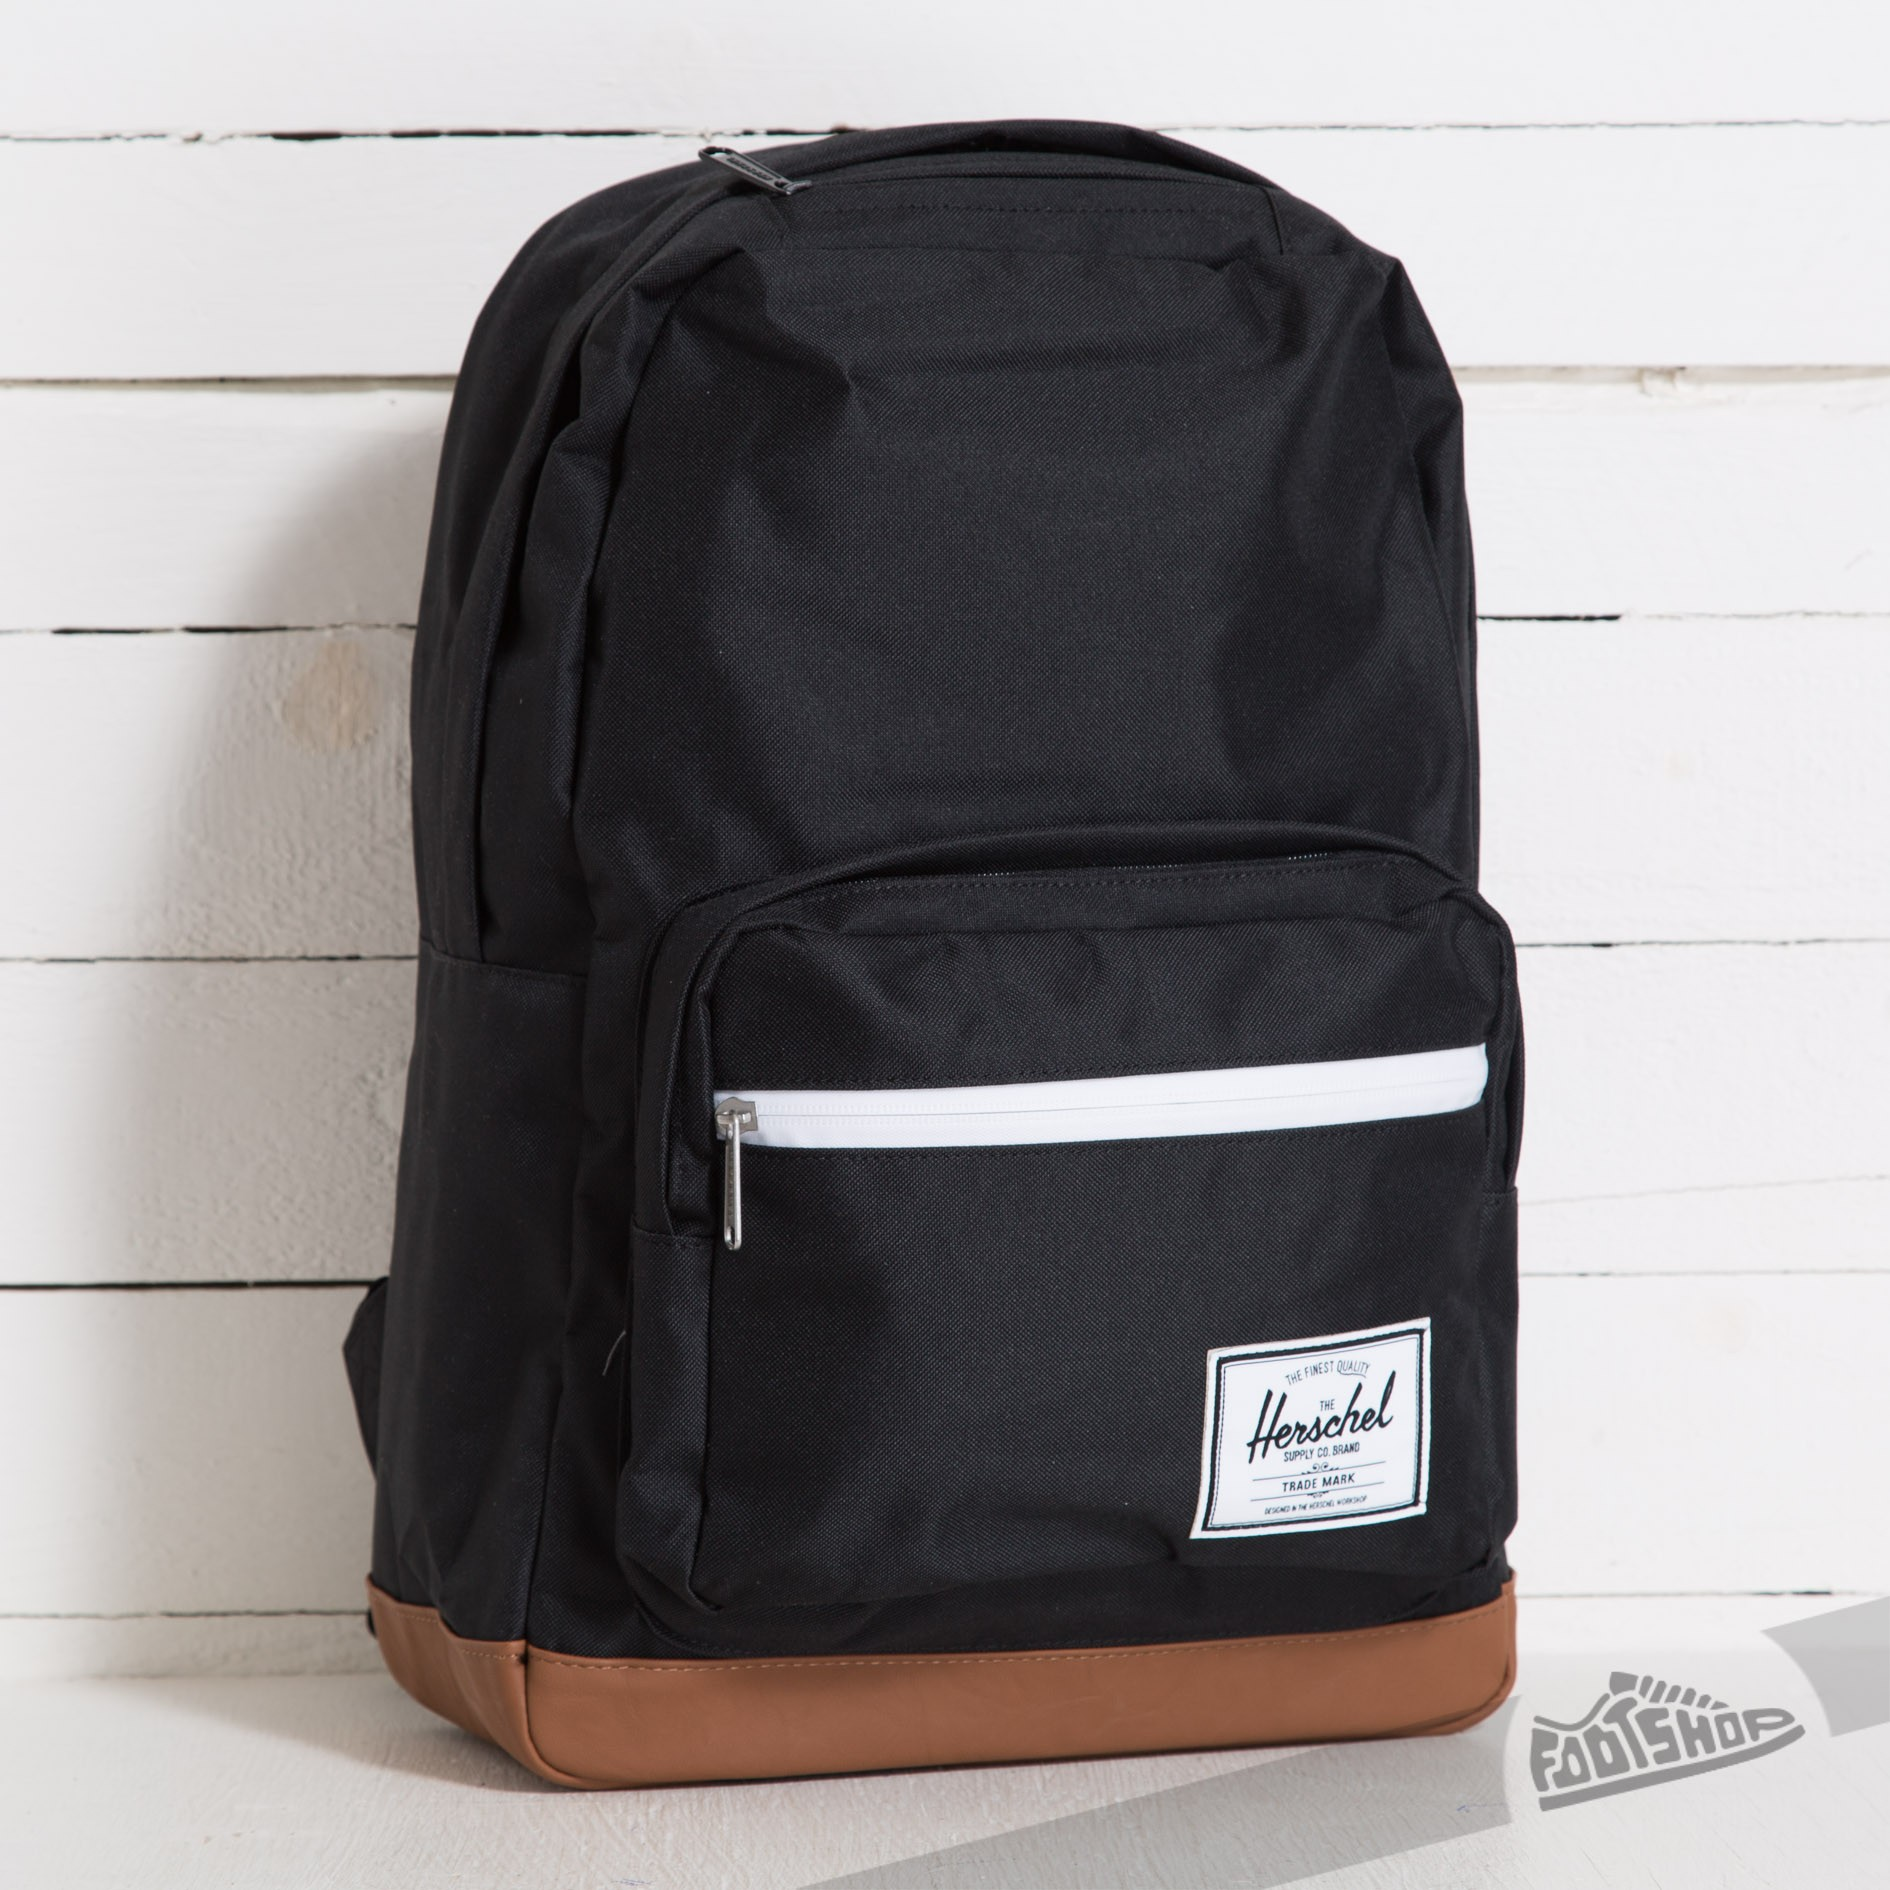 283f82fc96c1 Herschel Supply Co. Pop Quiz Backpack Black Tan